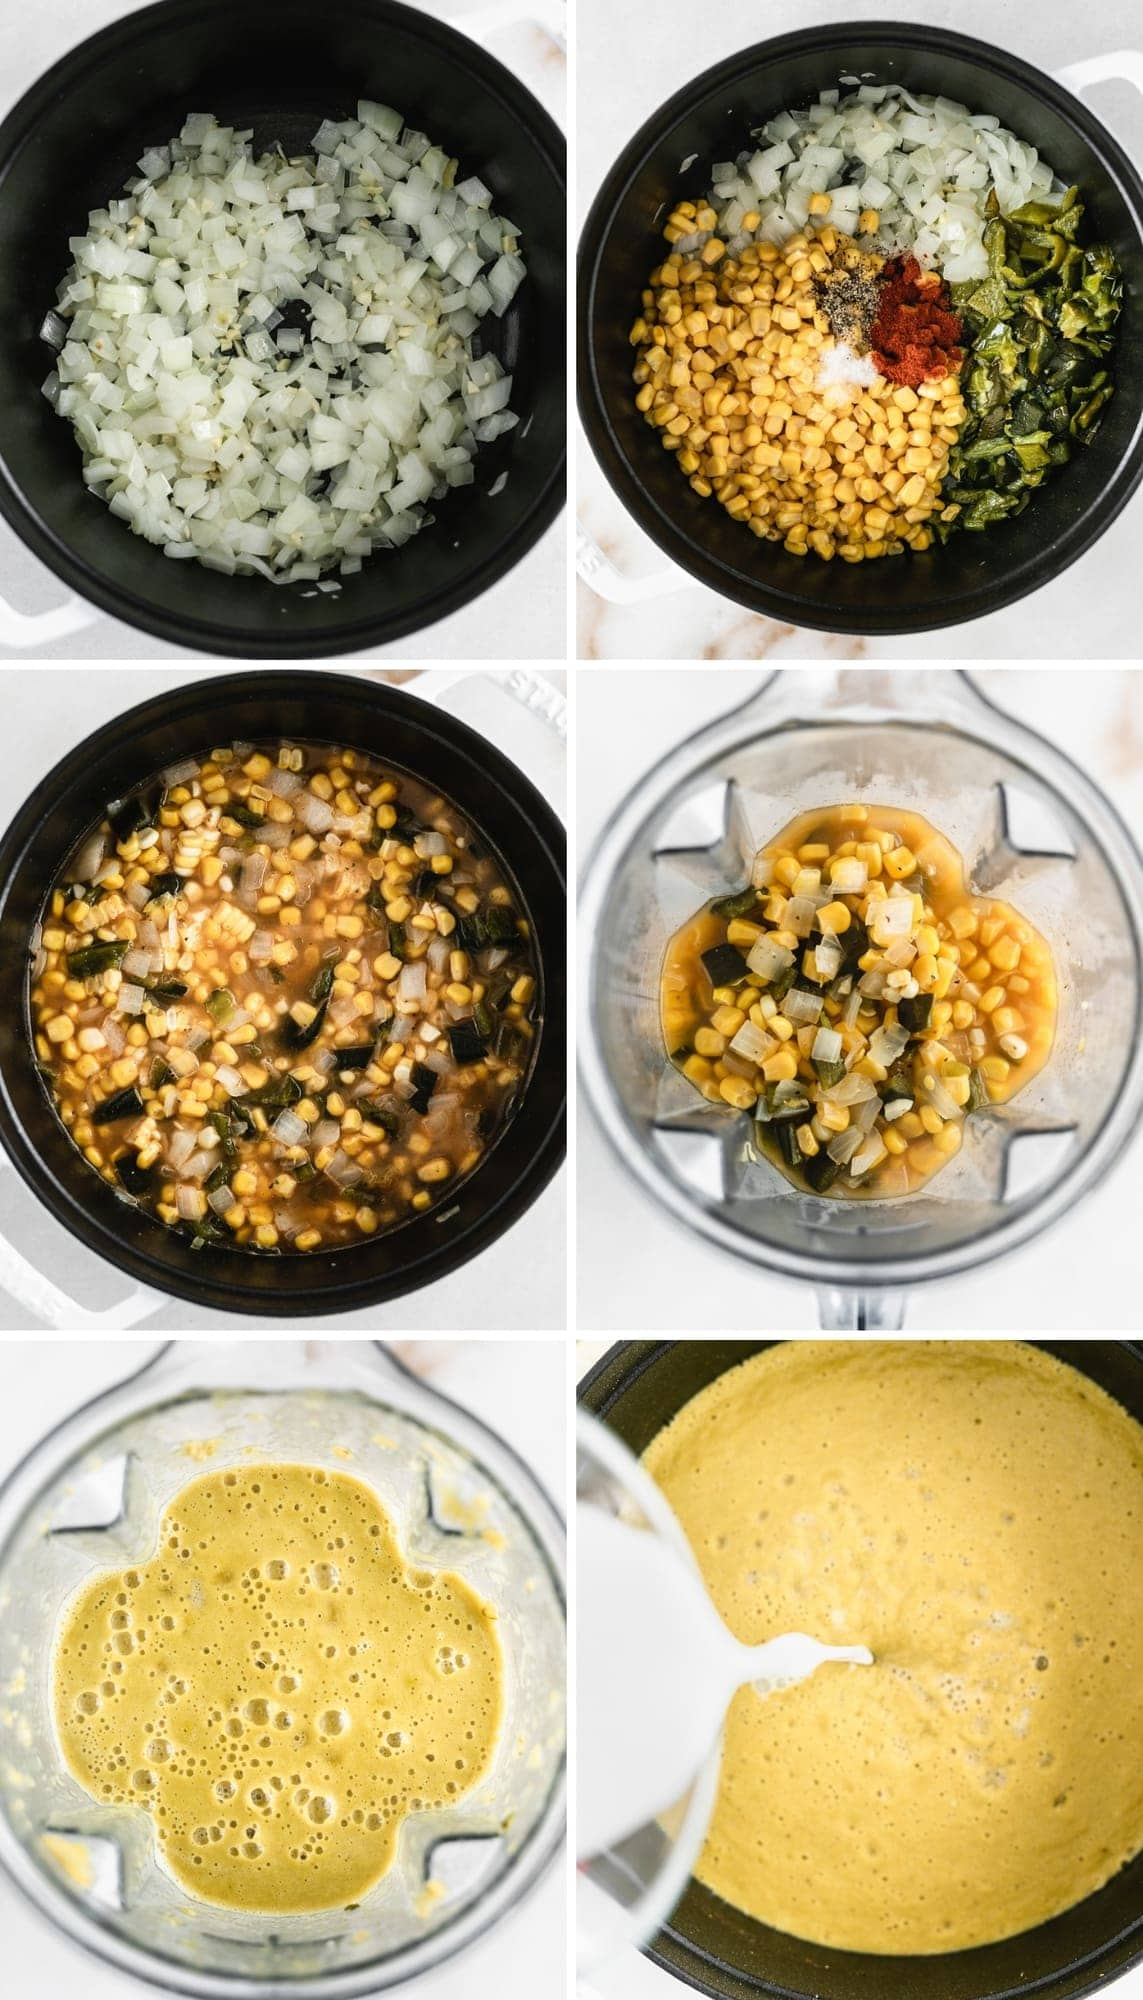 six image collage showing steps for making creamy corn poblano soup.